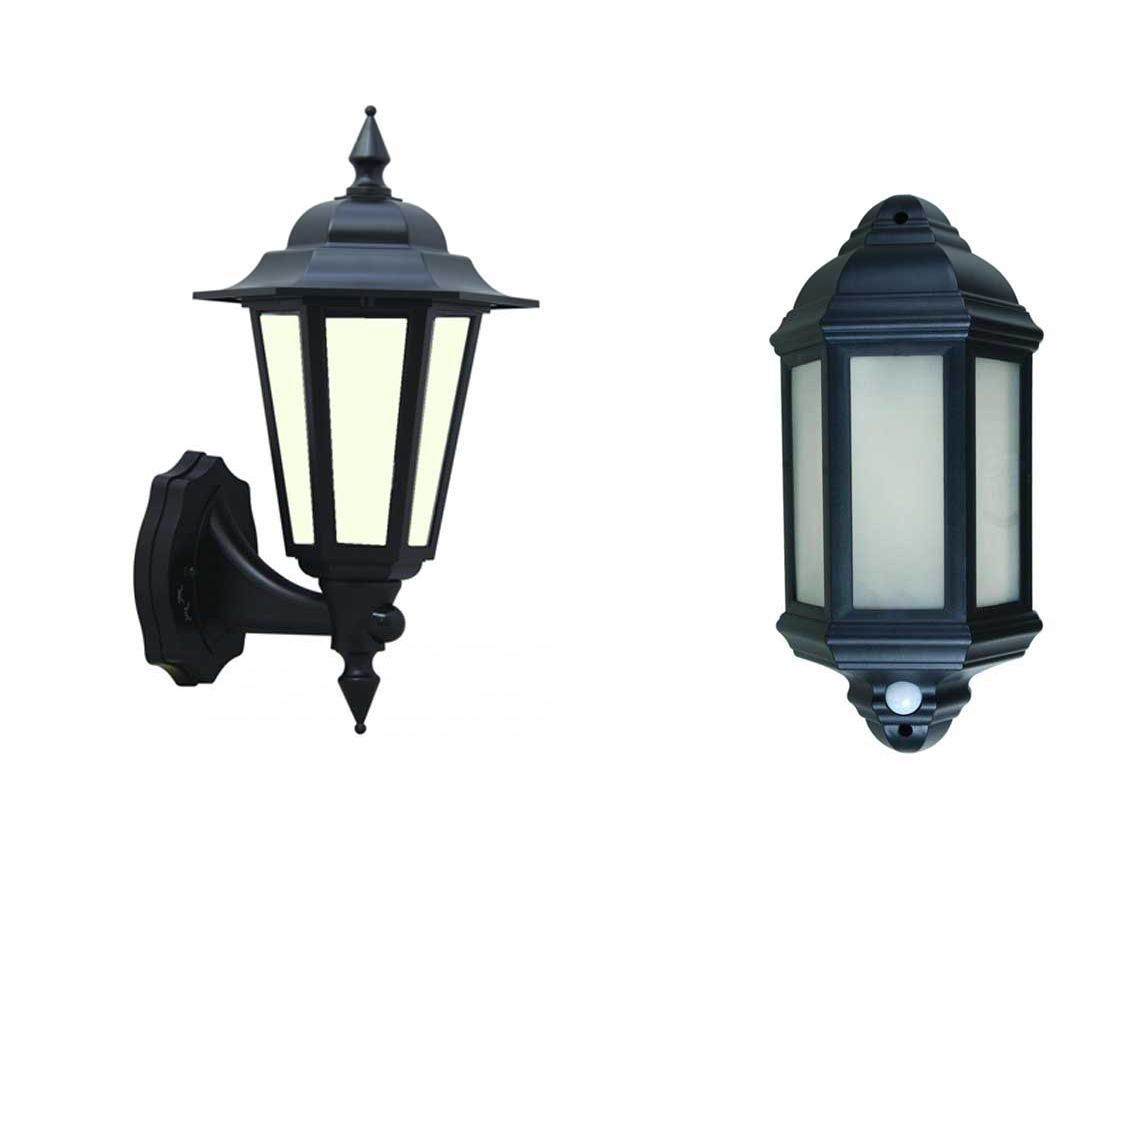 Traditional Nautical Black Ip44 Outdoor Garden Bollard: LED Outdoor Garden Wall Half Lantern PIR Black IP44